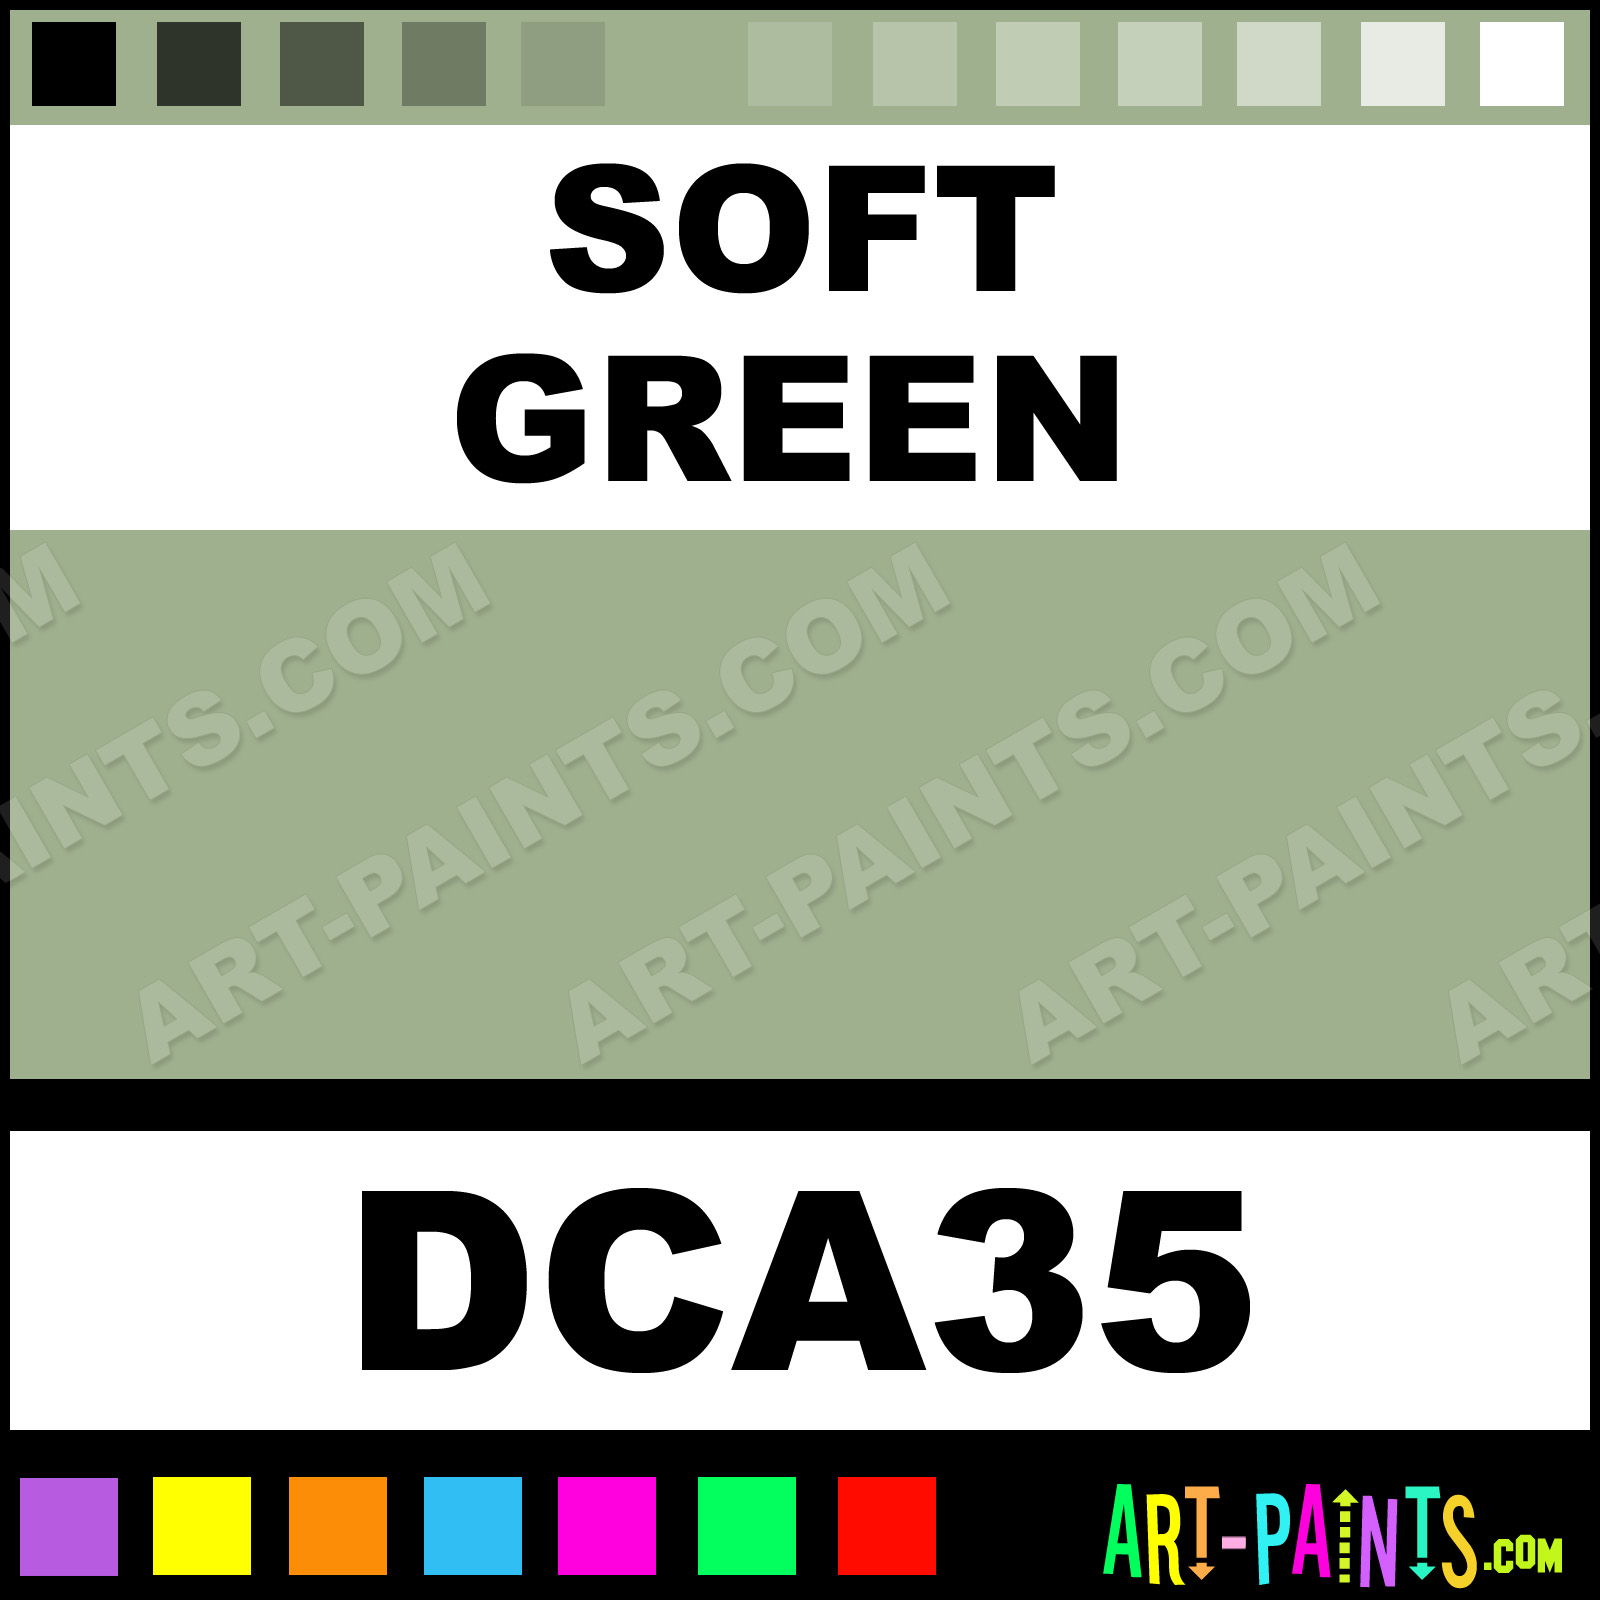 soft green crafters acrylic paints - dca35 - soft green paint